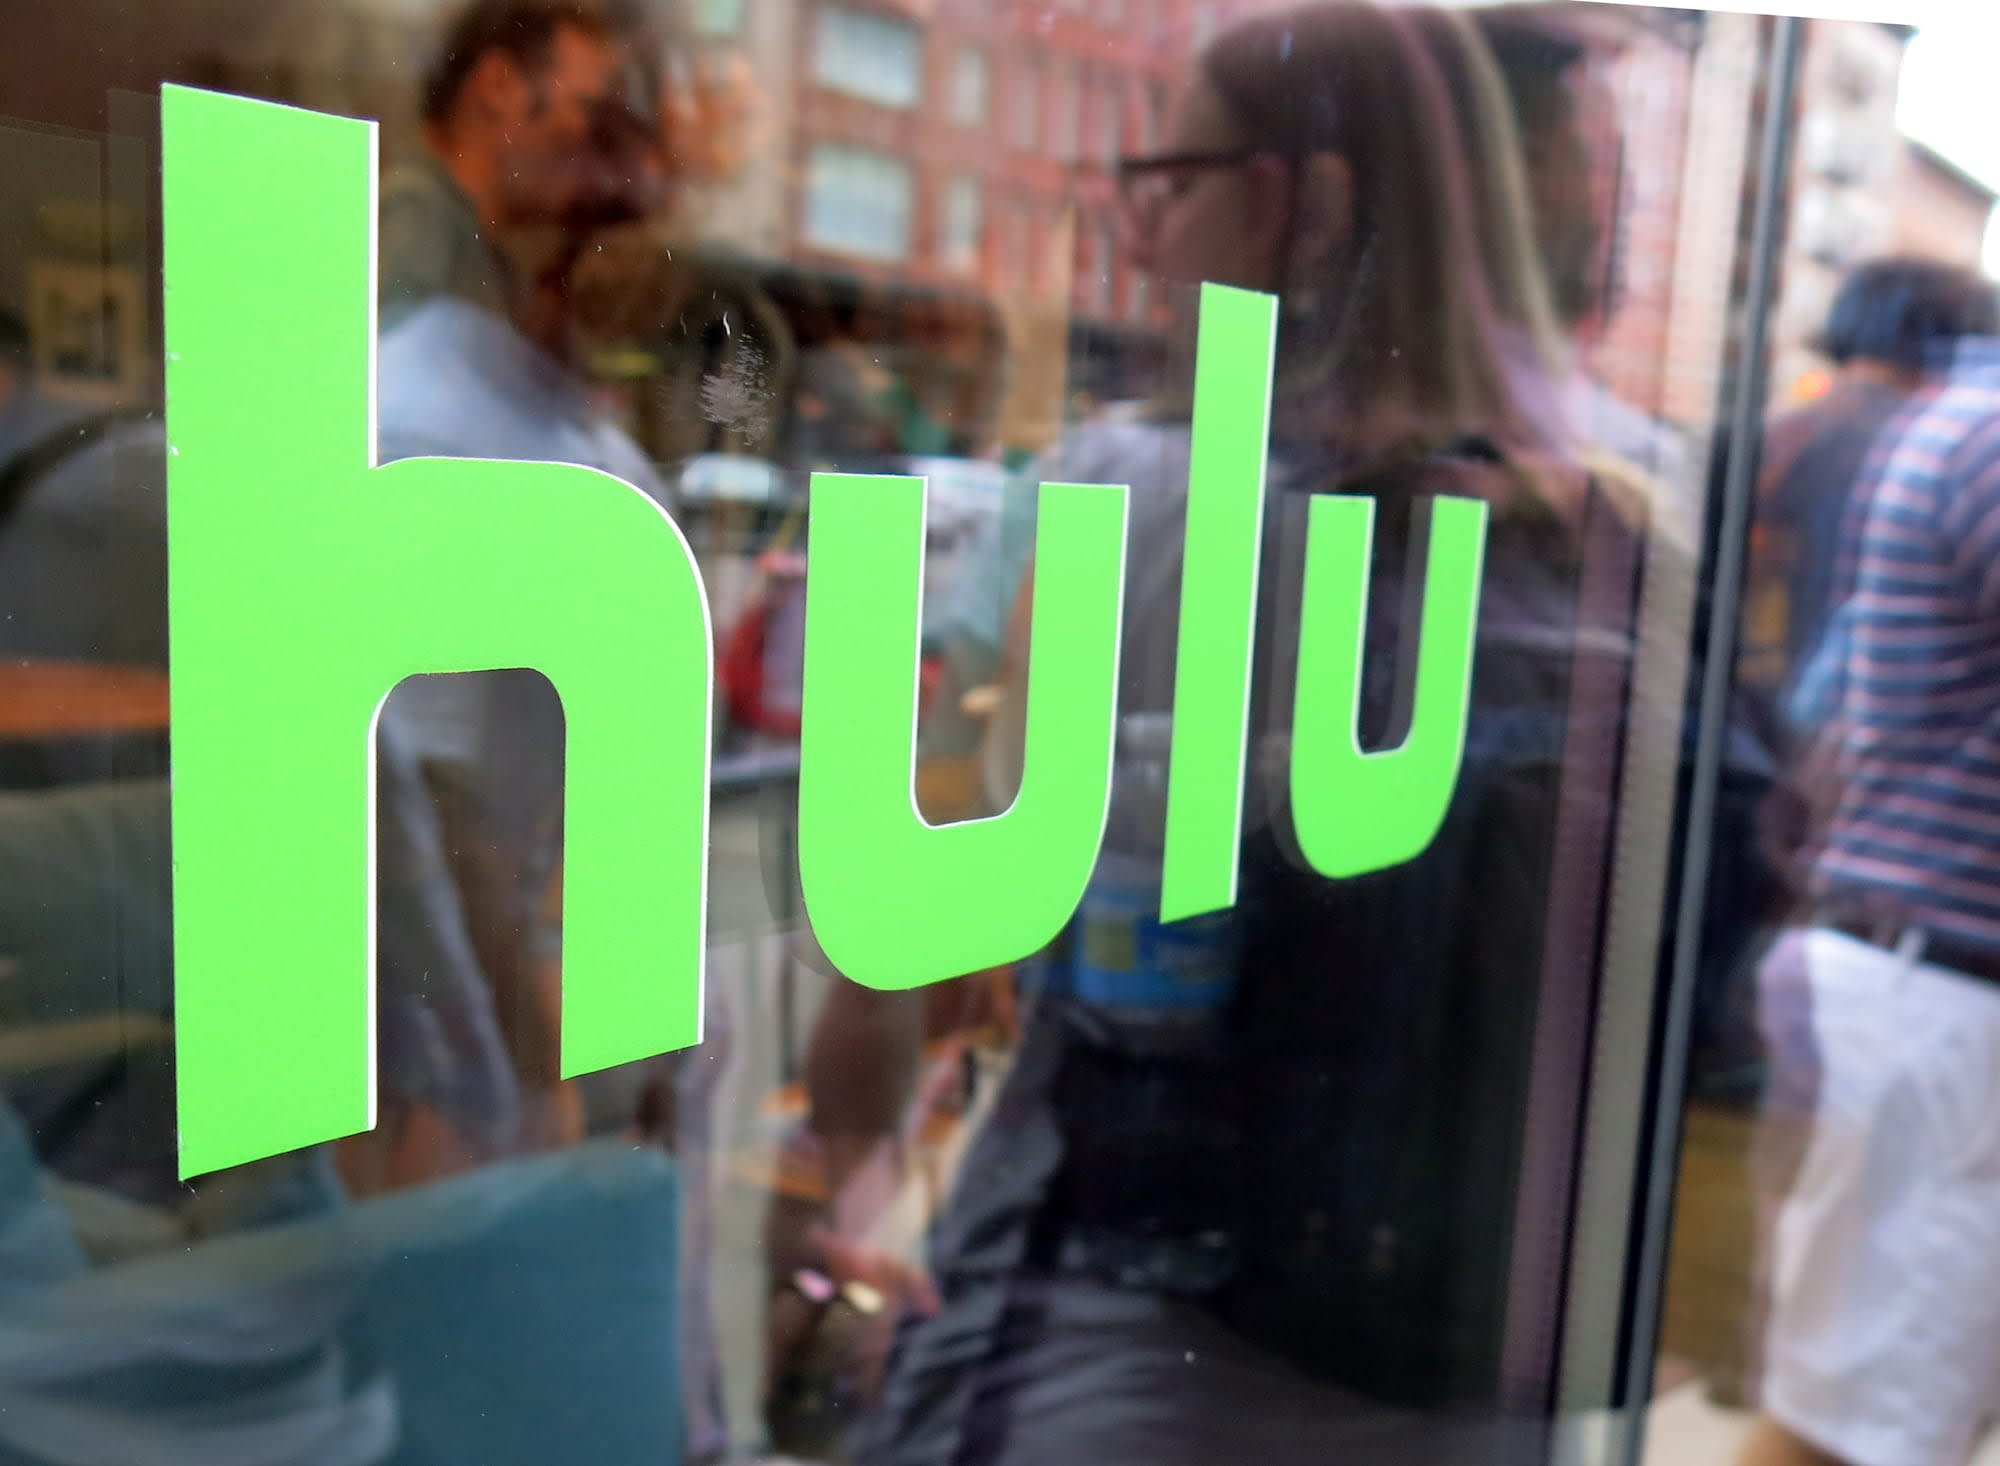 Hulu launches new live TV guide and reintroduces 4K streaming